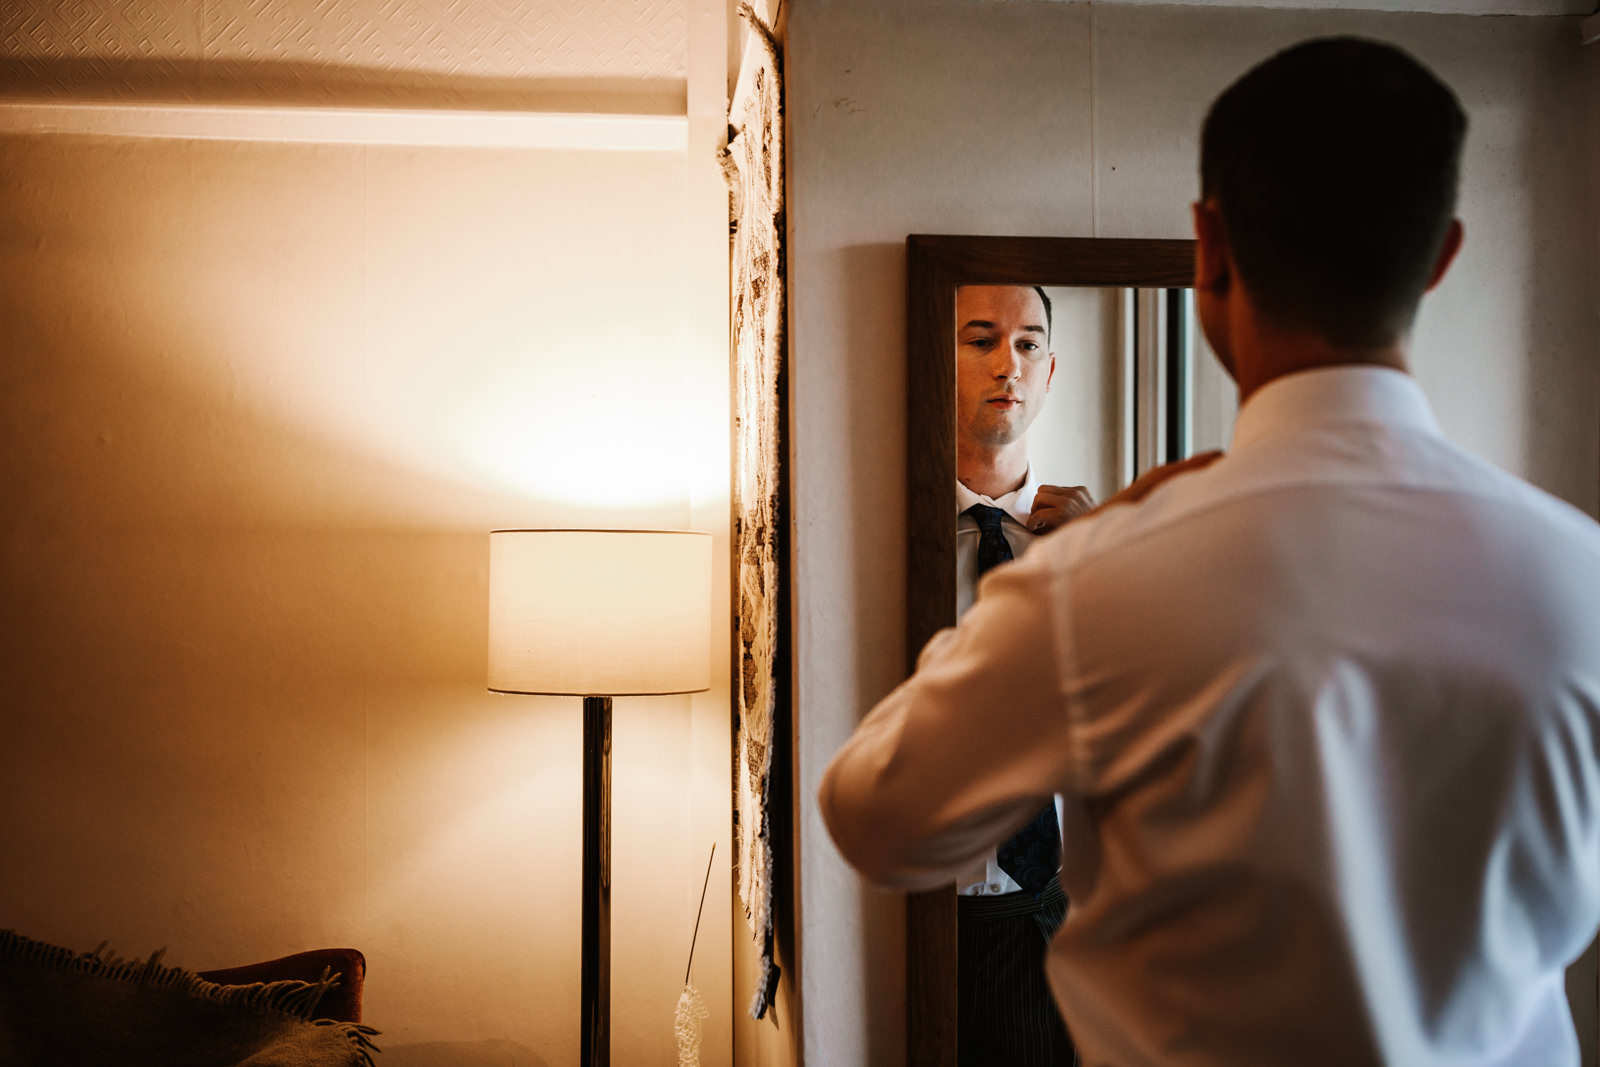 Groom getting ready in the mirror